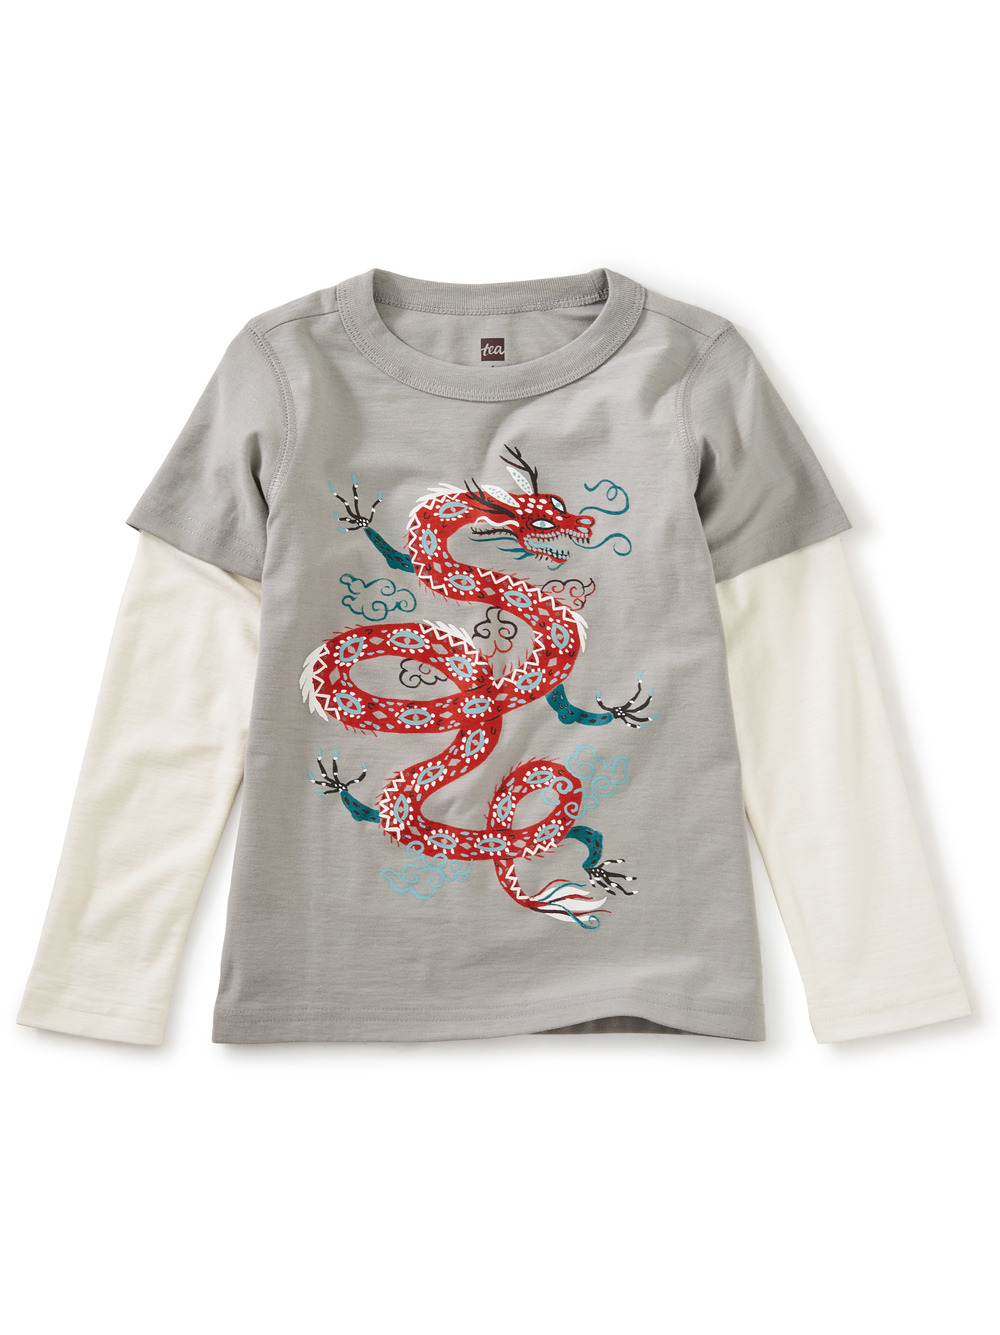 Here Be Dragons Layered Graphic Tee